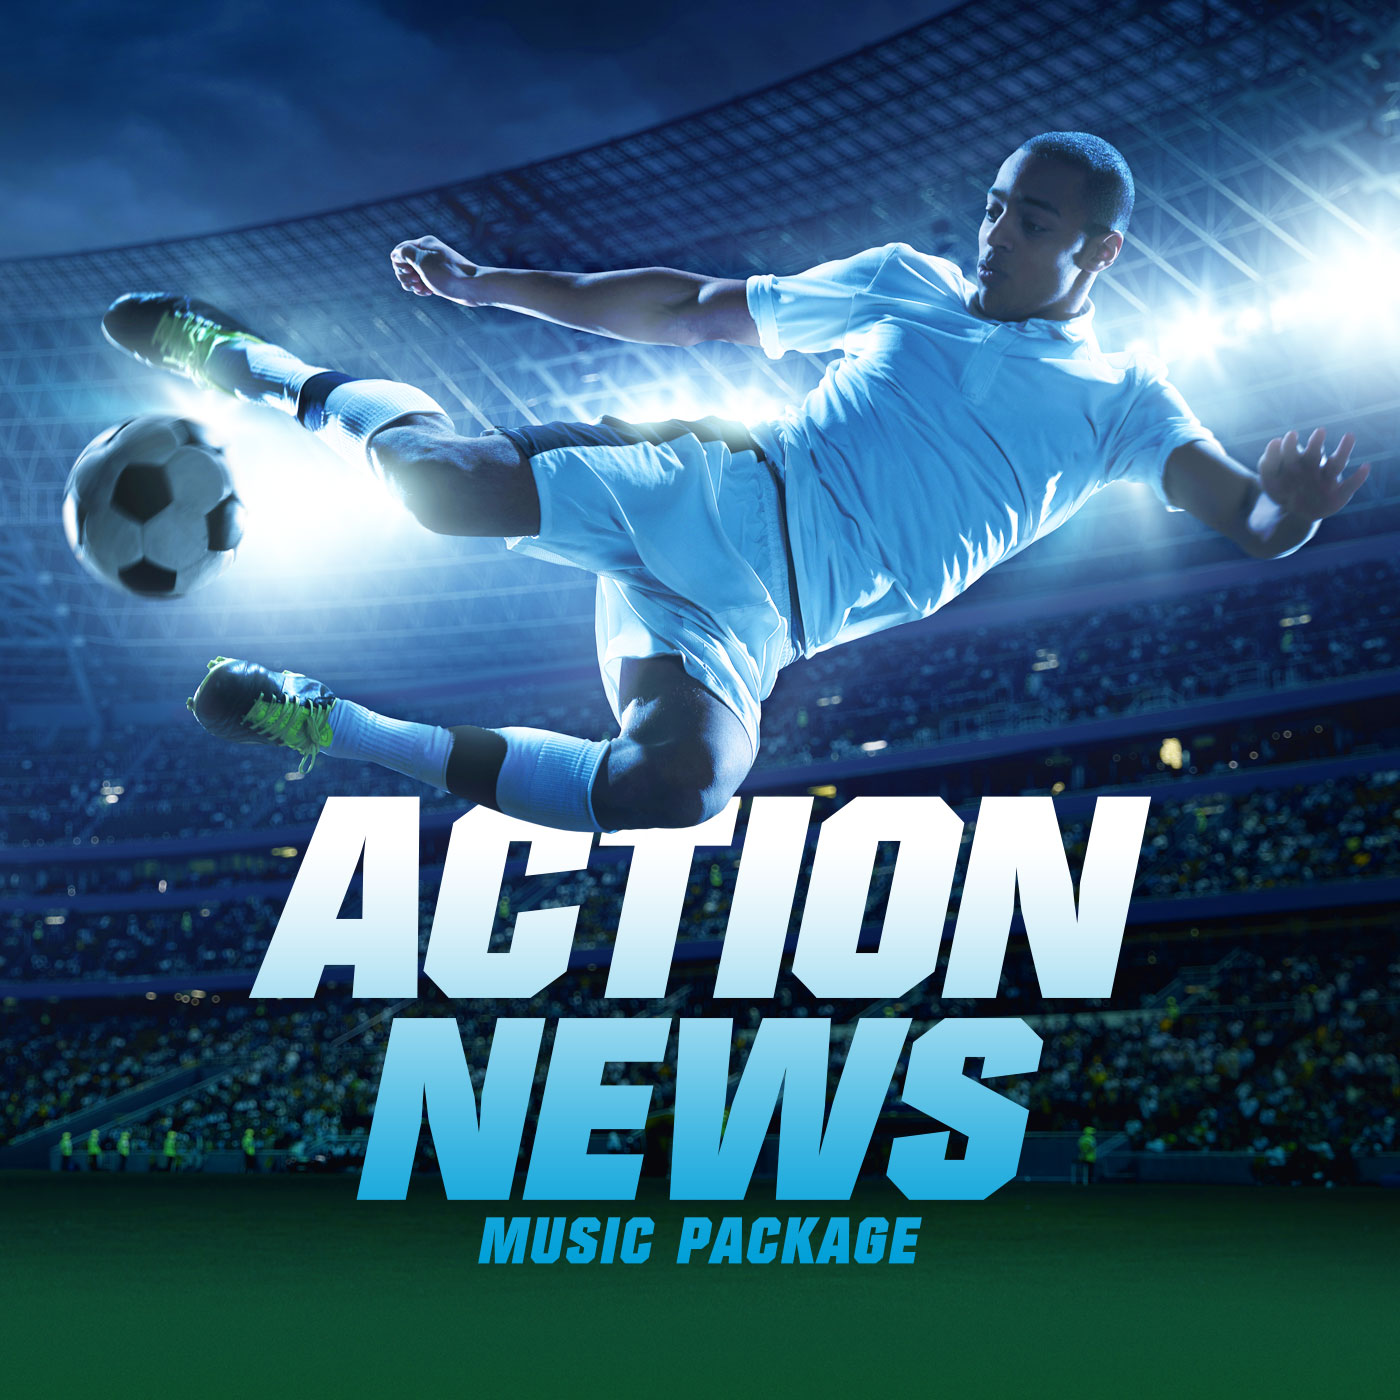 Action News News Music Package